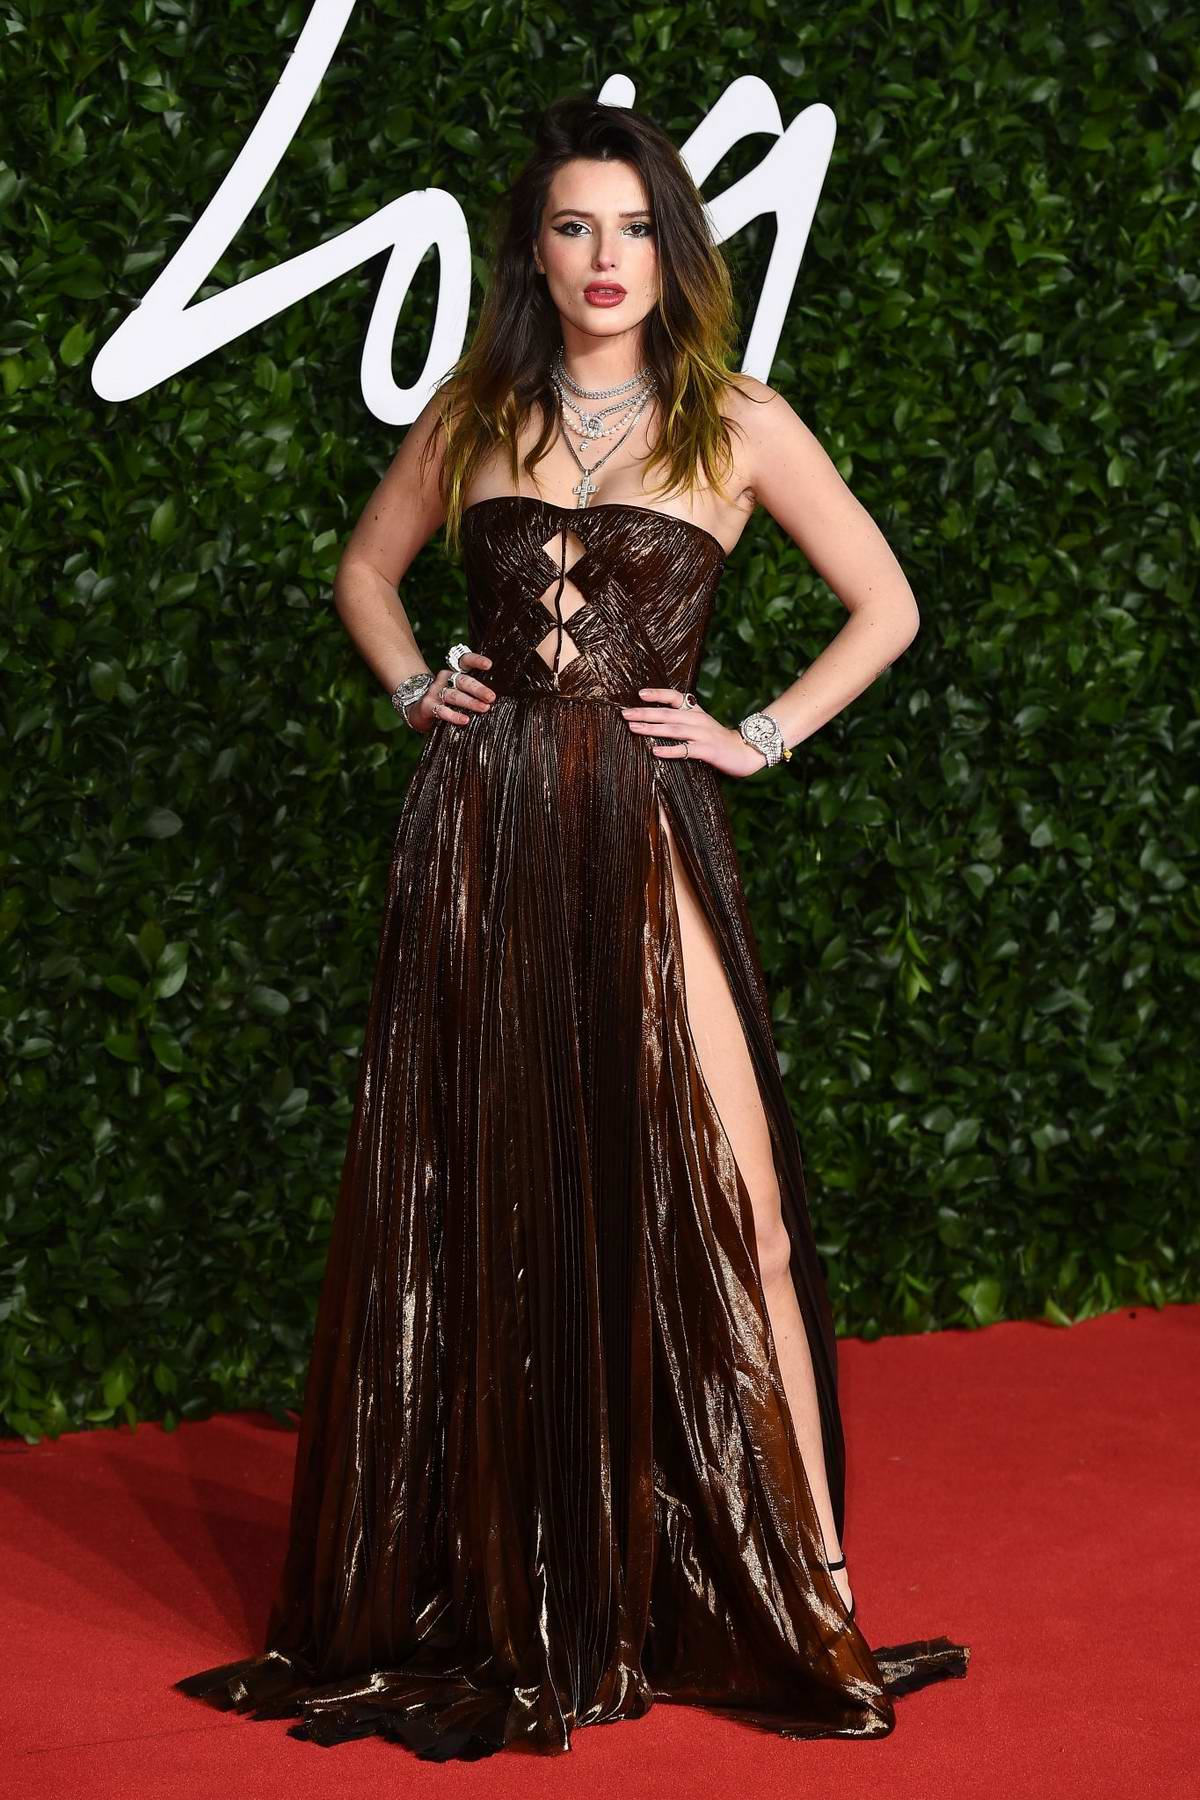 Bella Thorne attends The Fashion Awards 2019 held at Royal Albert Hall in London, UK